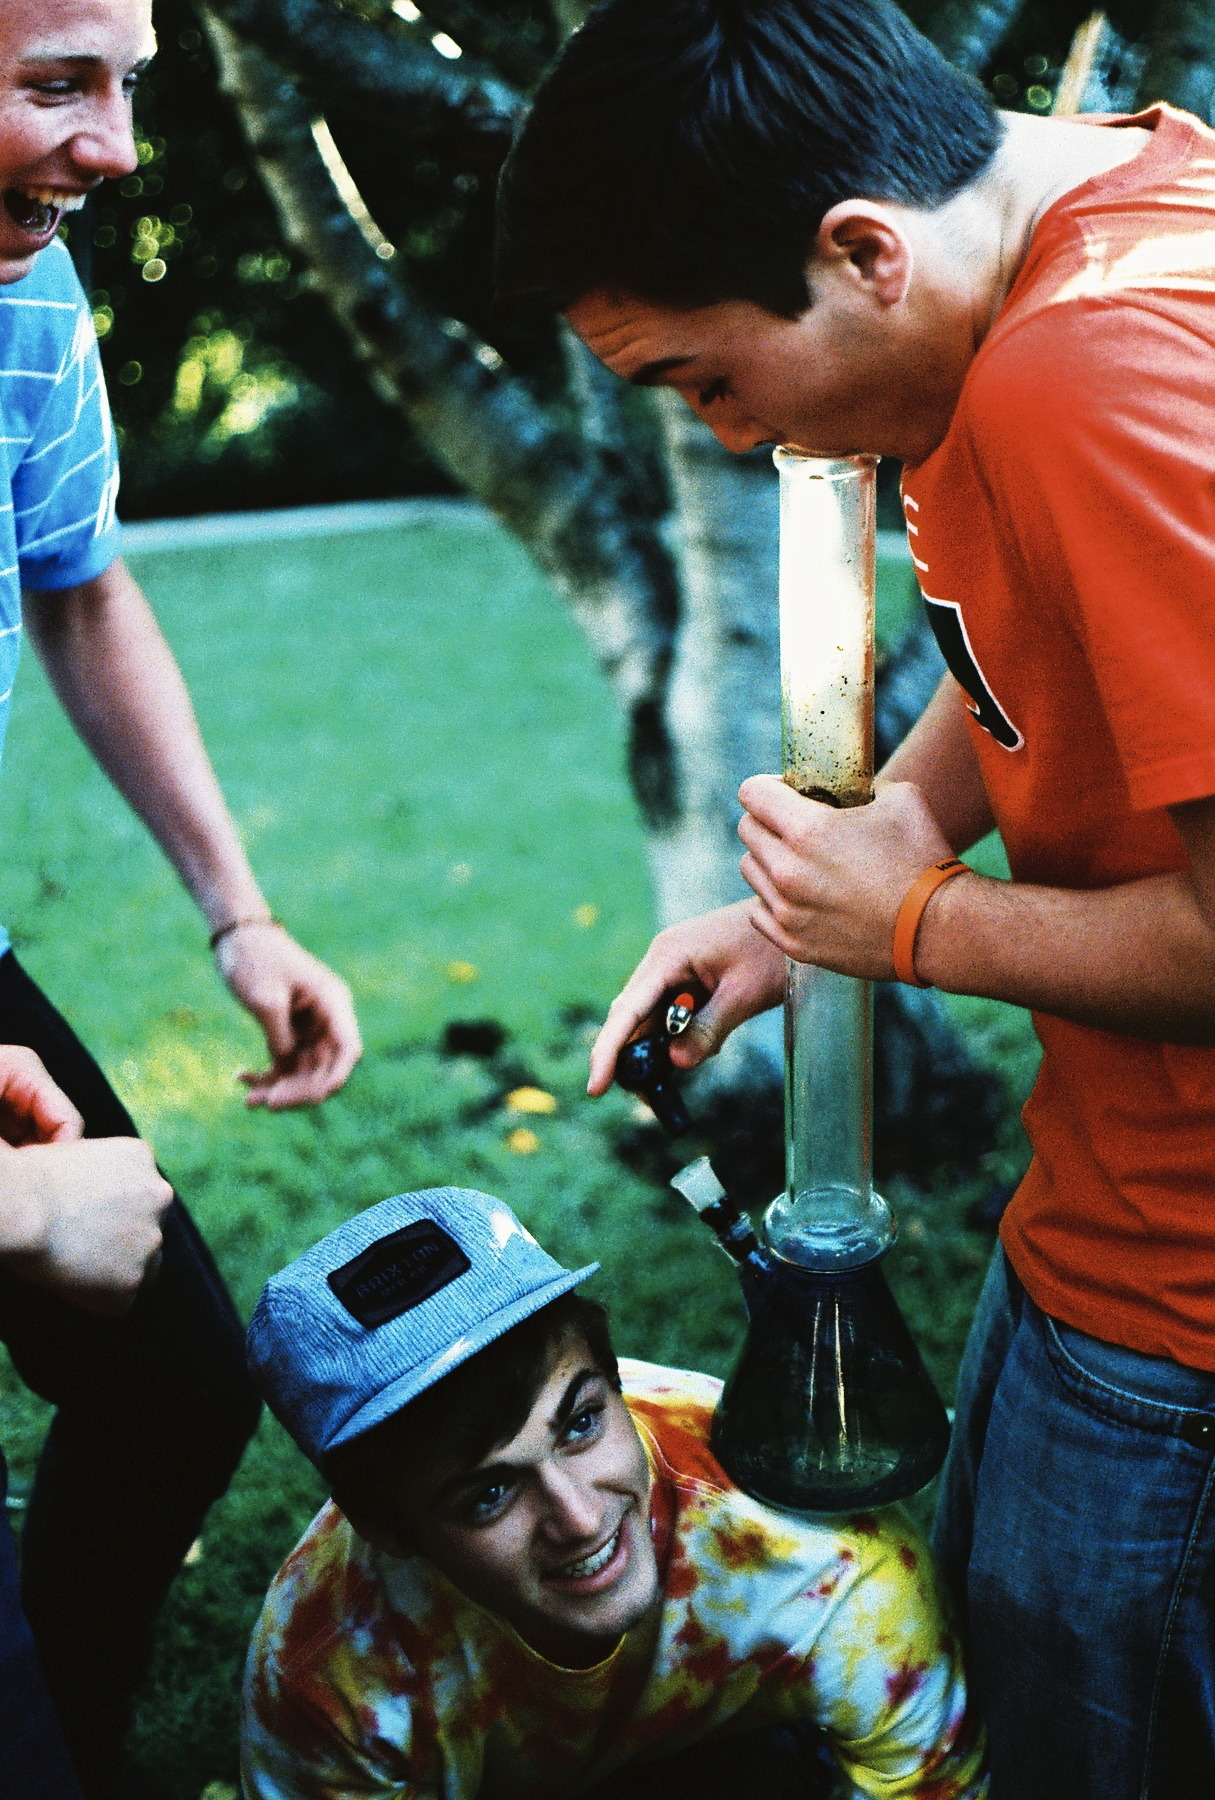 Kids smoking bong. Woooo! Good times!